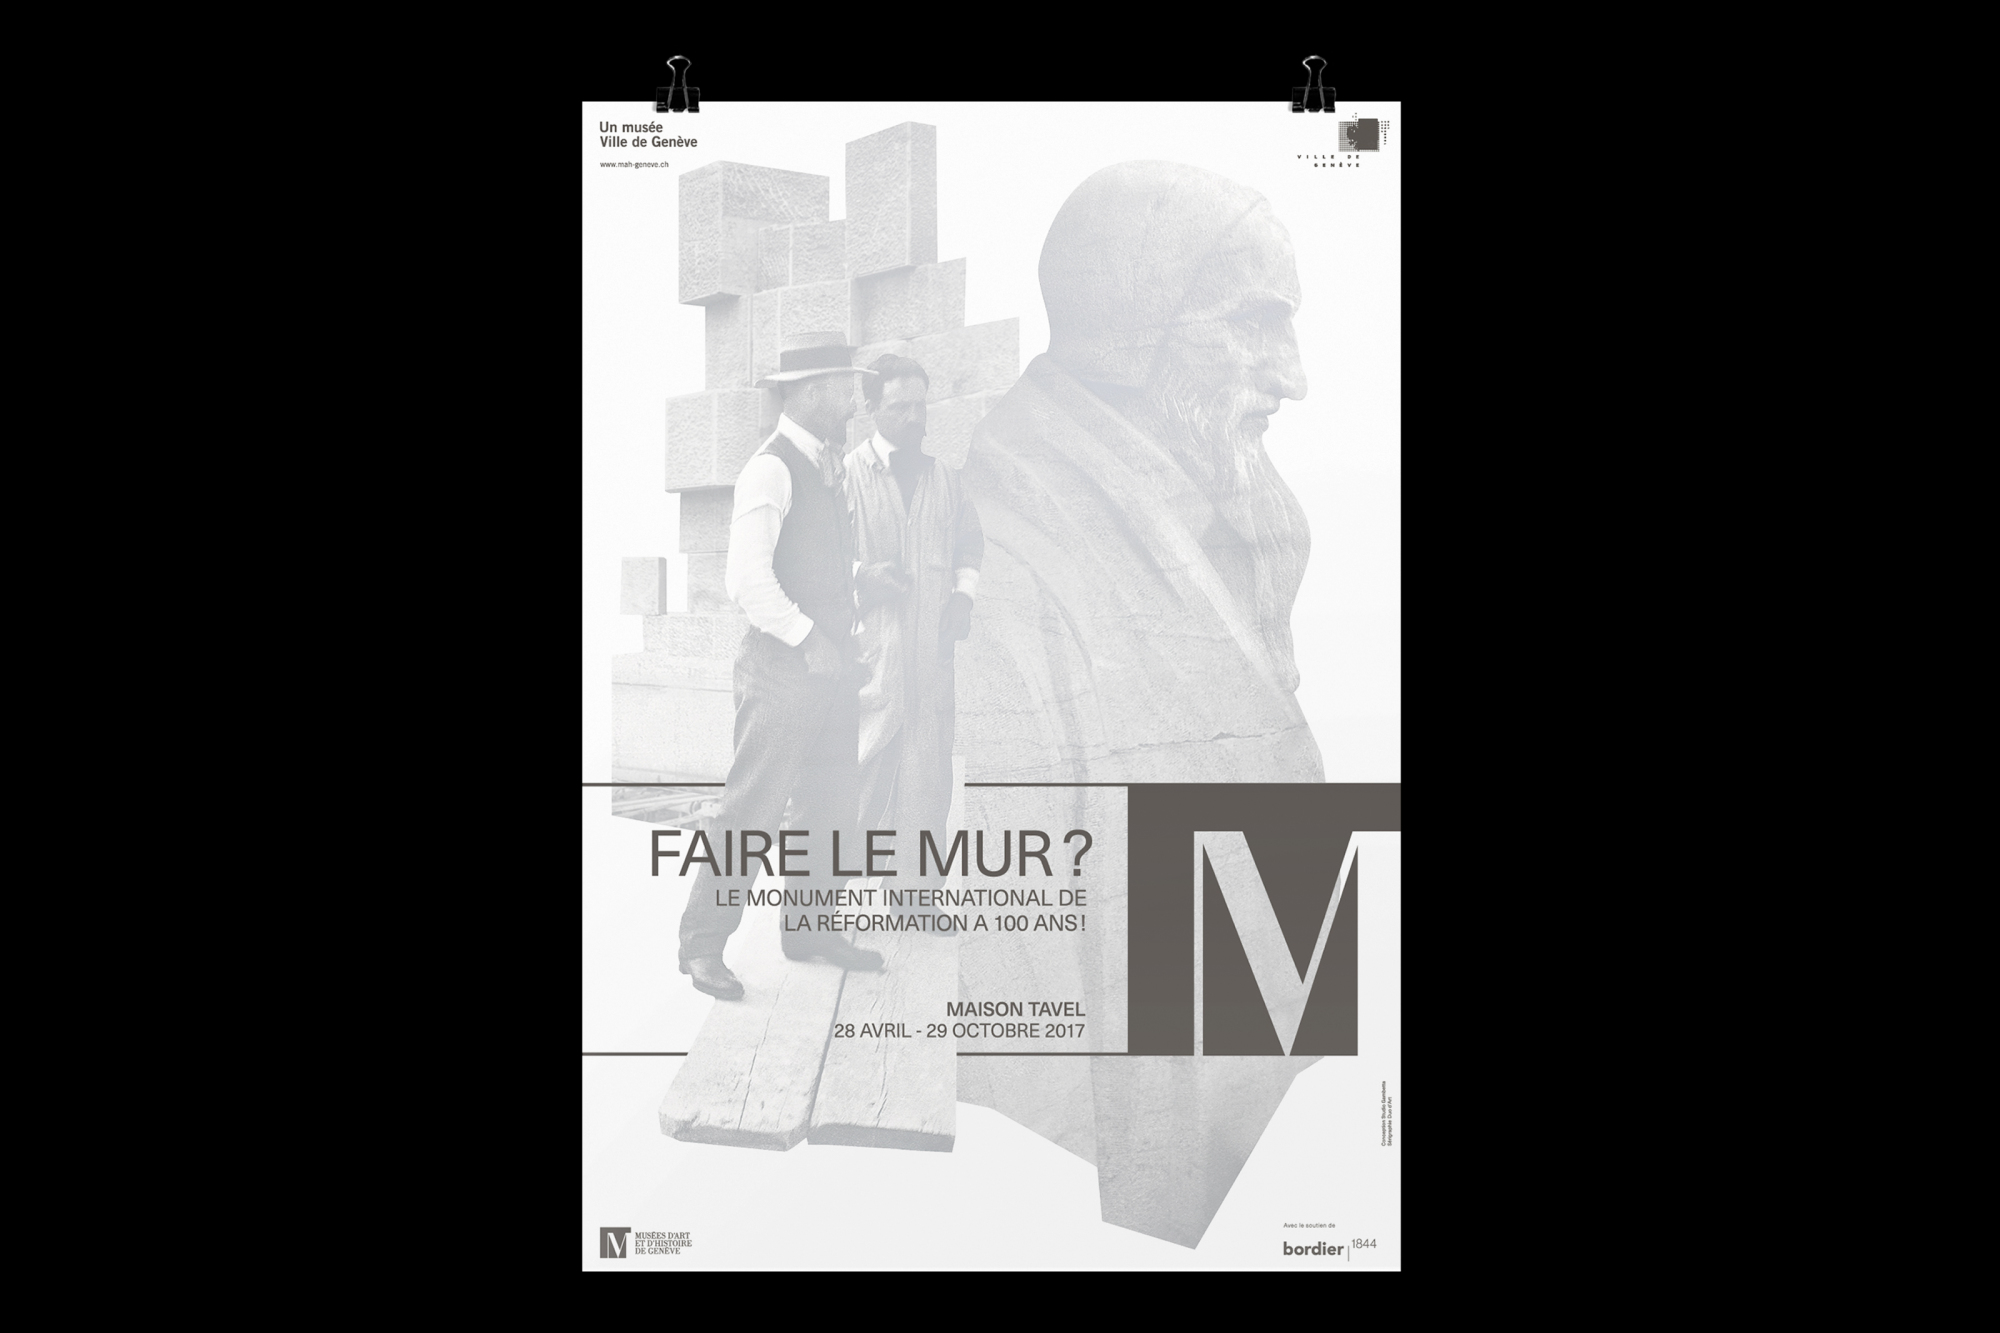 Graphisme Geneve graphic design graphique direction artistique affiche poster swissposter culture culturel promotion mah maison tavel Faire le mur? exposition monument international de la reformation reformateurs 2017 serigraphie